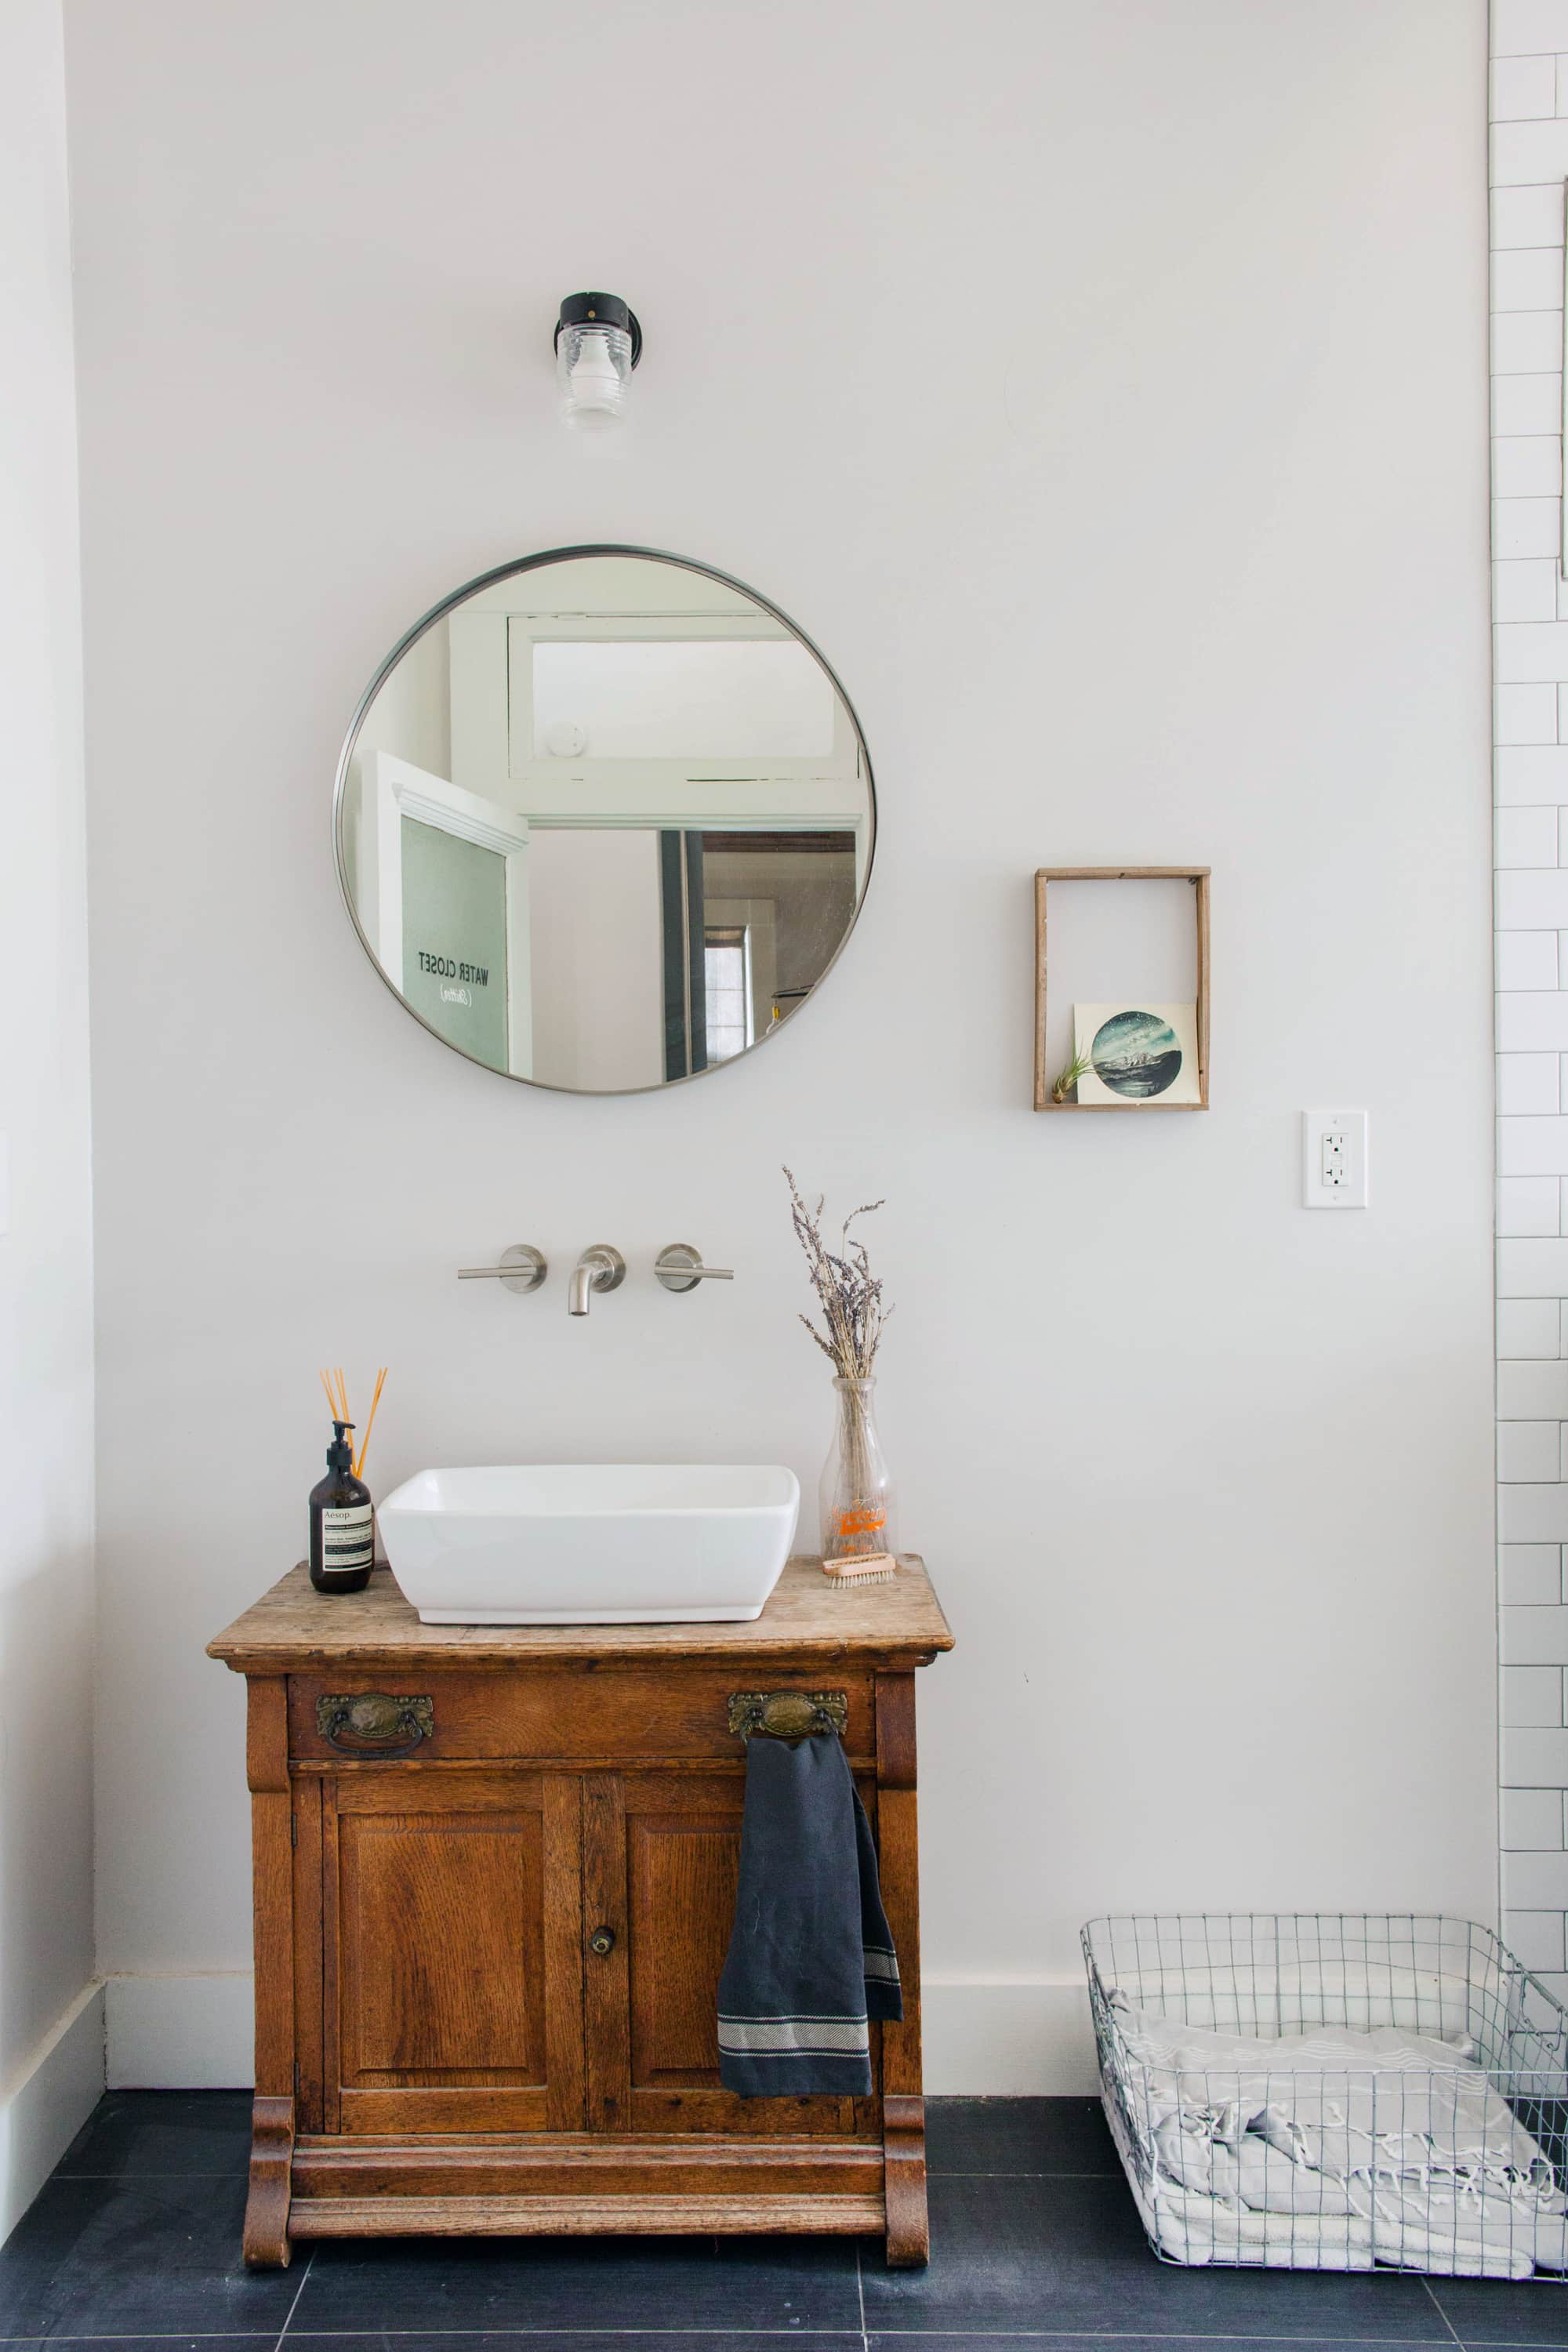 House Tour: Industrial,texas Minimalism In East Austin Throughout Austin Industrial Accent Mirrors (View 24 of 30)